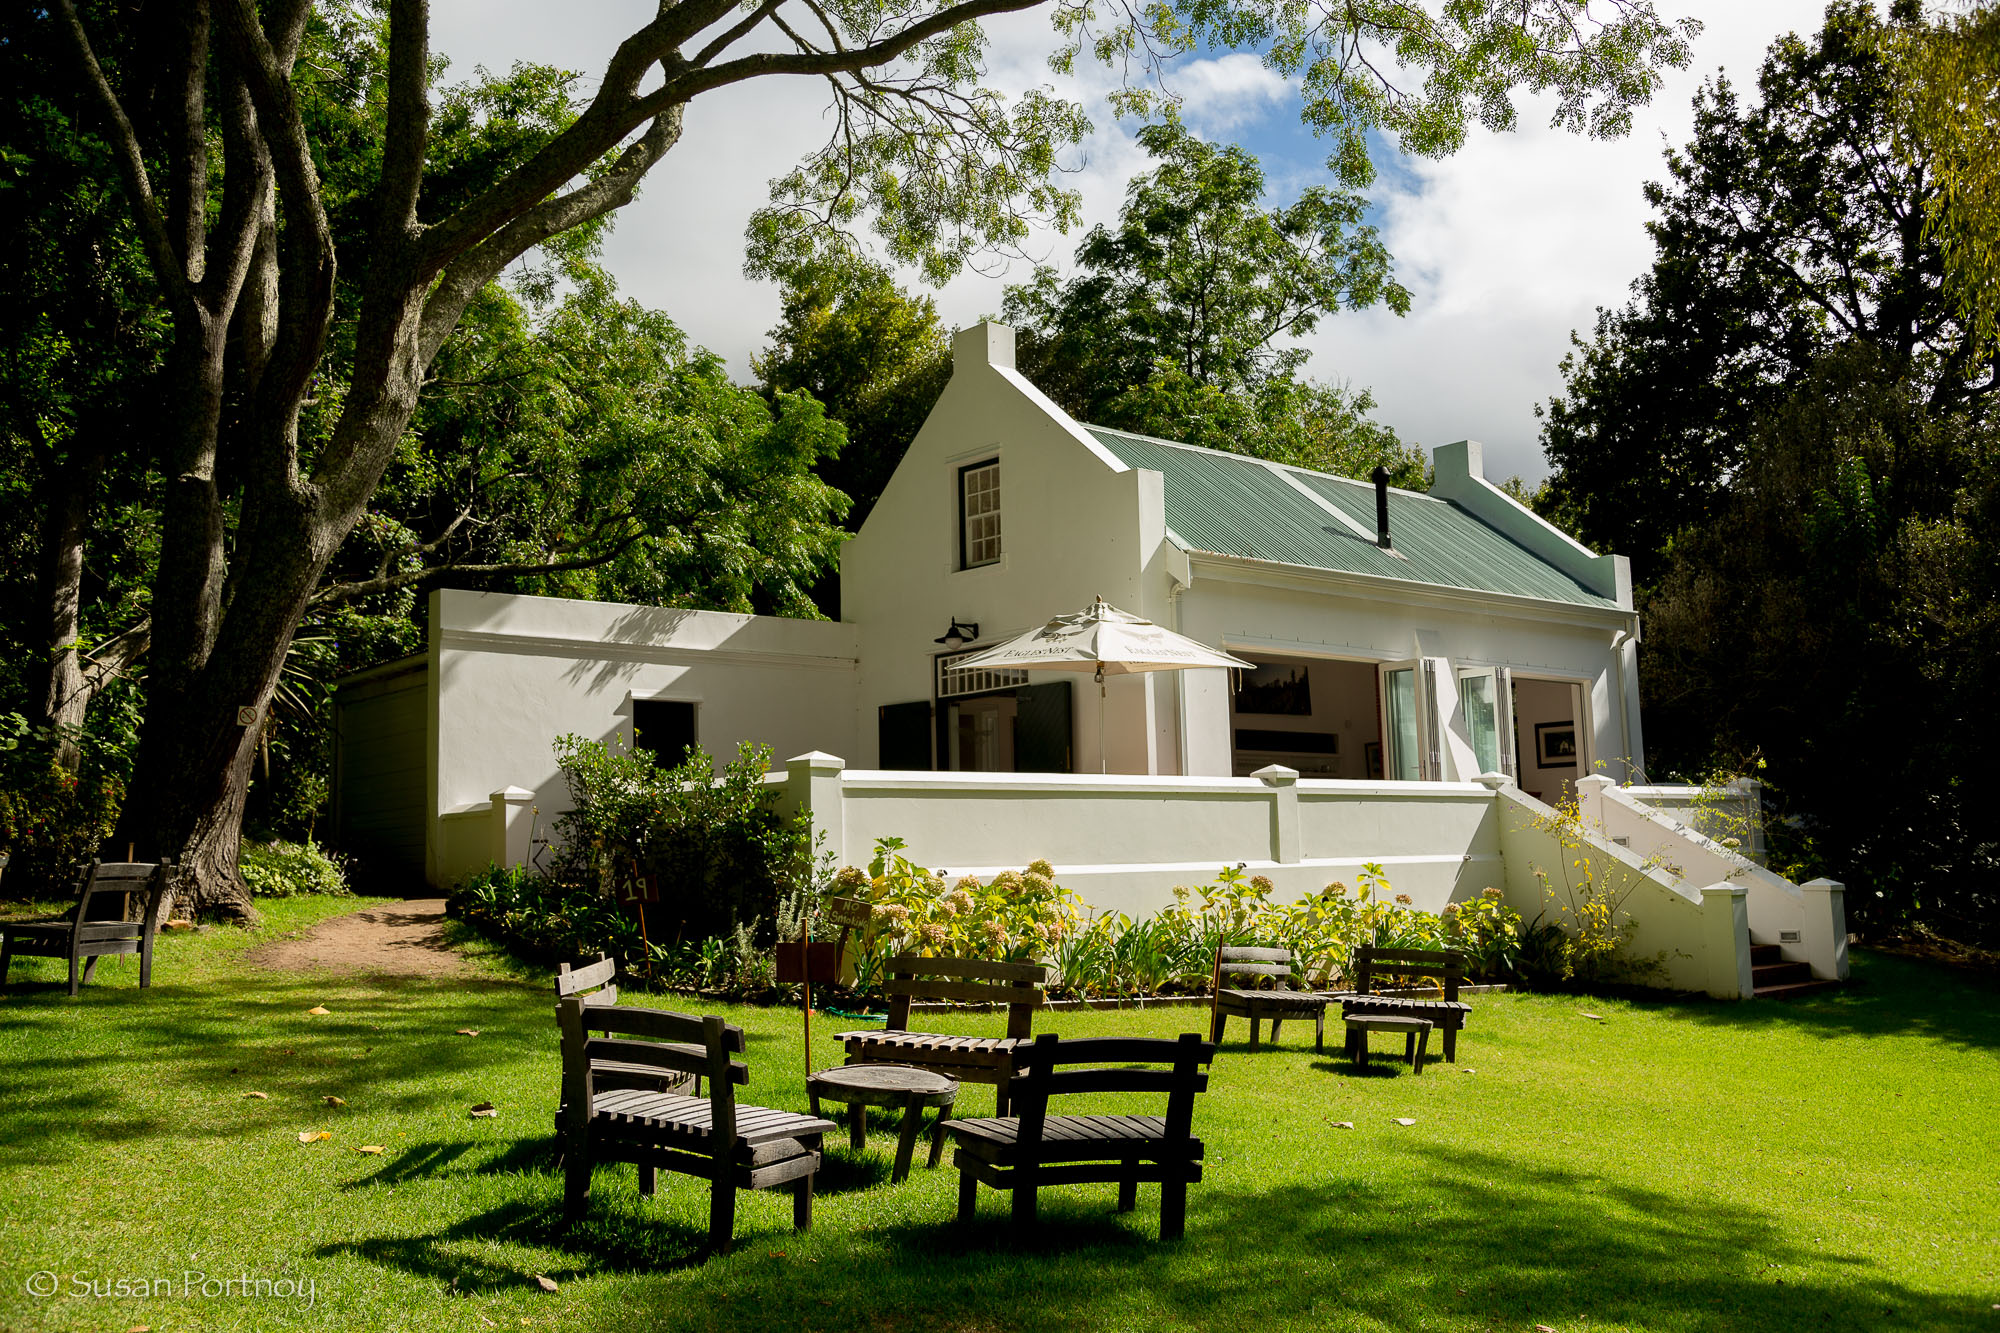 Eagles 39 Nest Vineyard A Must On Any Cape Town Itinerary HuffPost